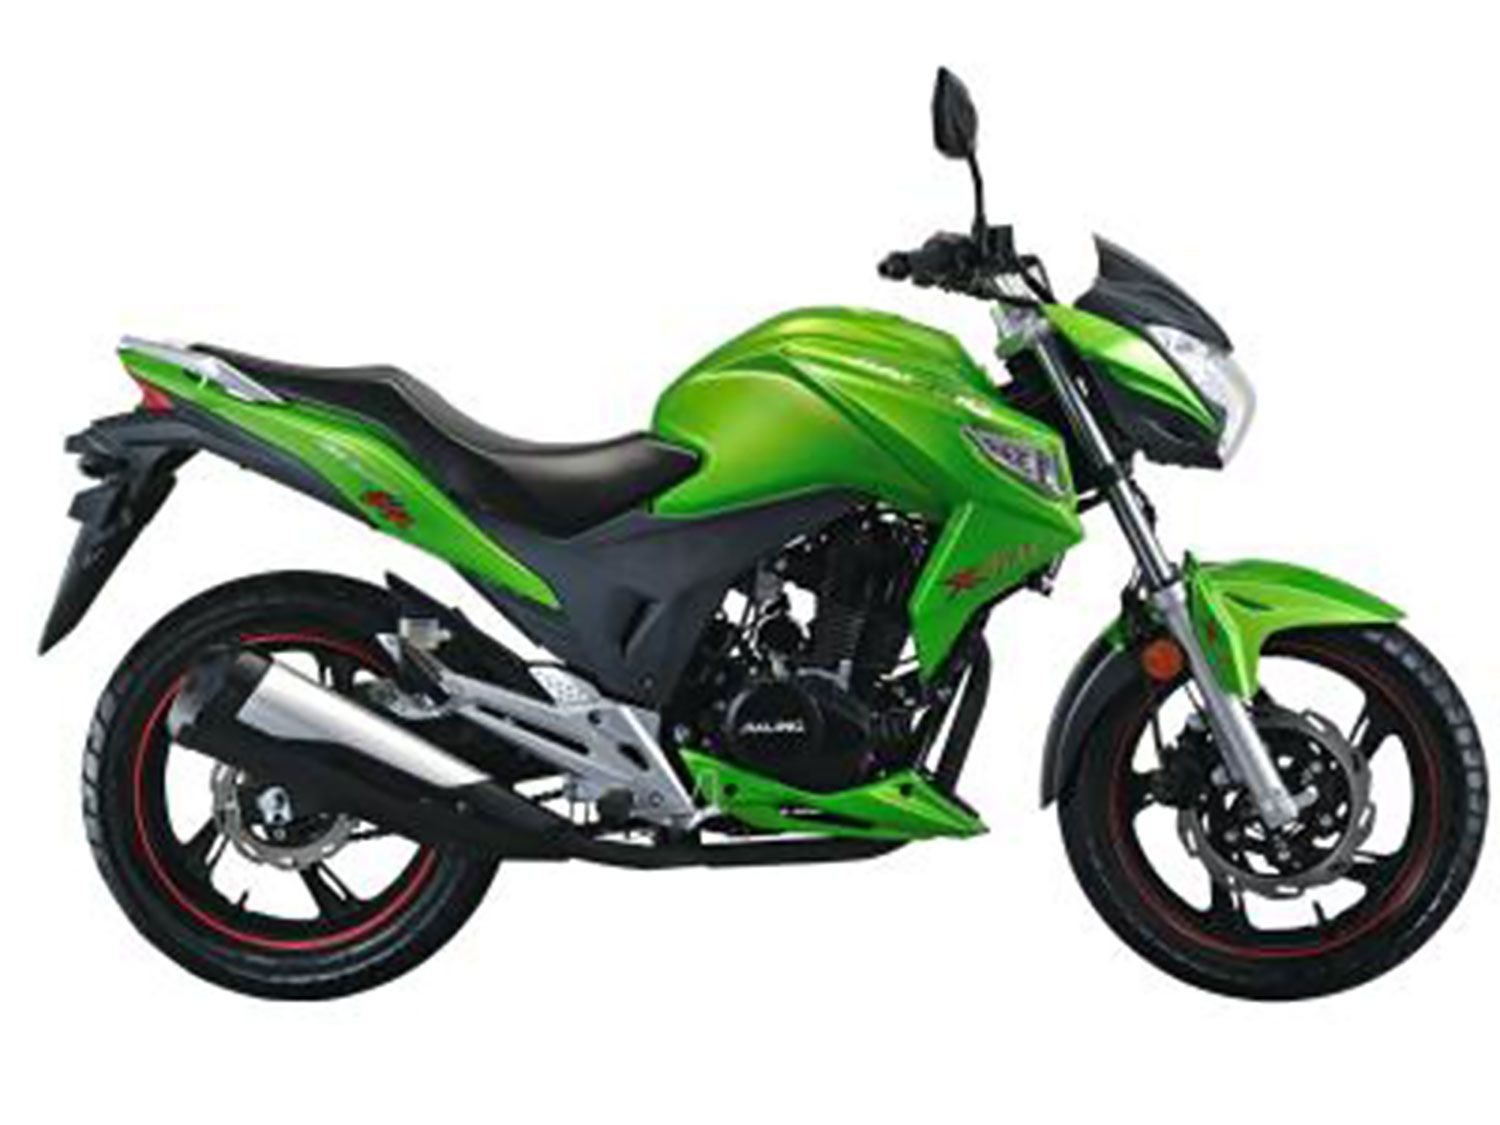 Chinese motorcycles that fall in the 50cc–500cc range will be included in the September 1 tariffs.